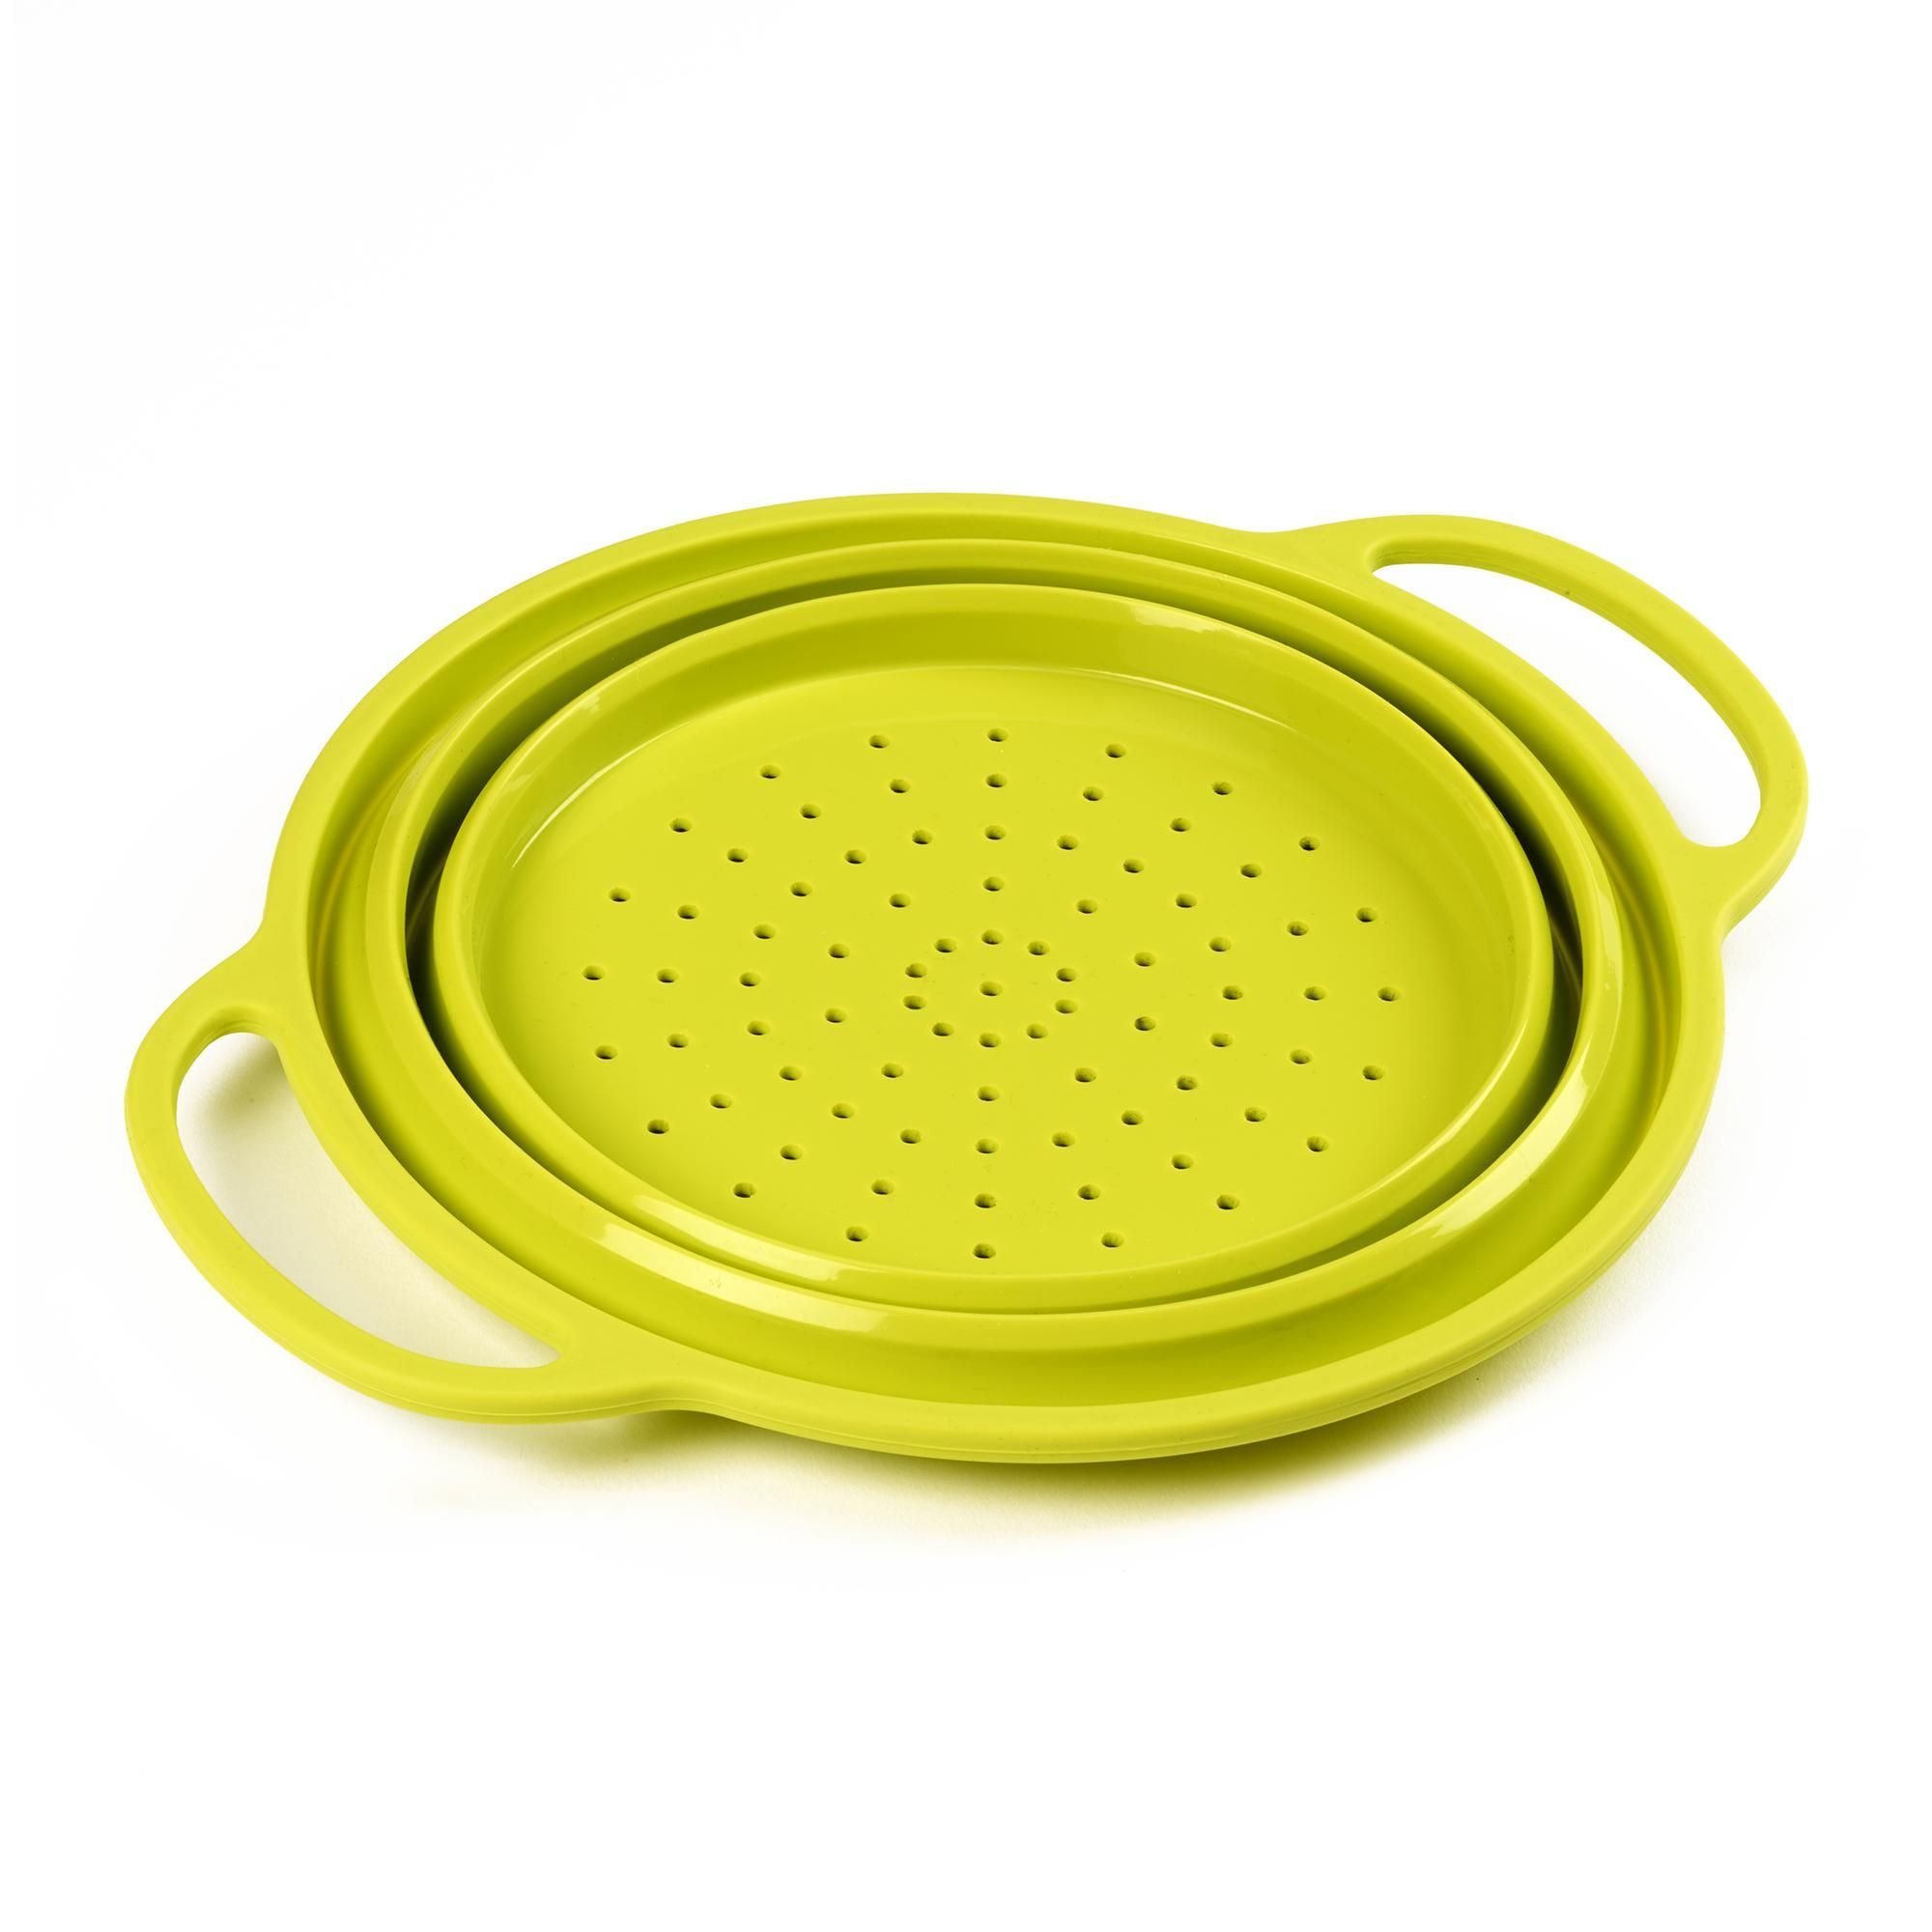 Made from silicone with a practical non-stick surface, this collapsible colander by Handy Kitchen features internally reinforced rim and handles for added stability. Dishwasher safe for ease of cleaning, this colander has been finished in a bright lime green colour.